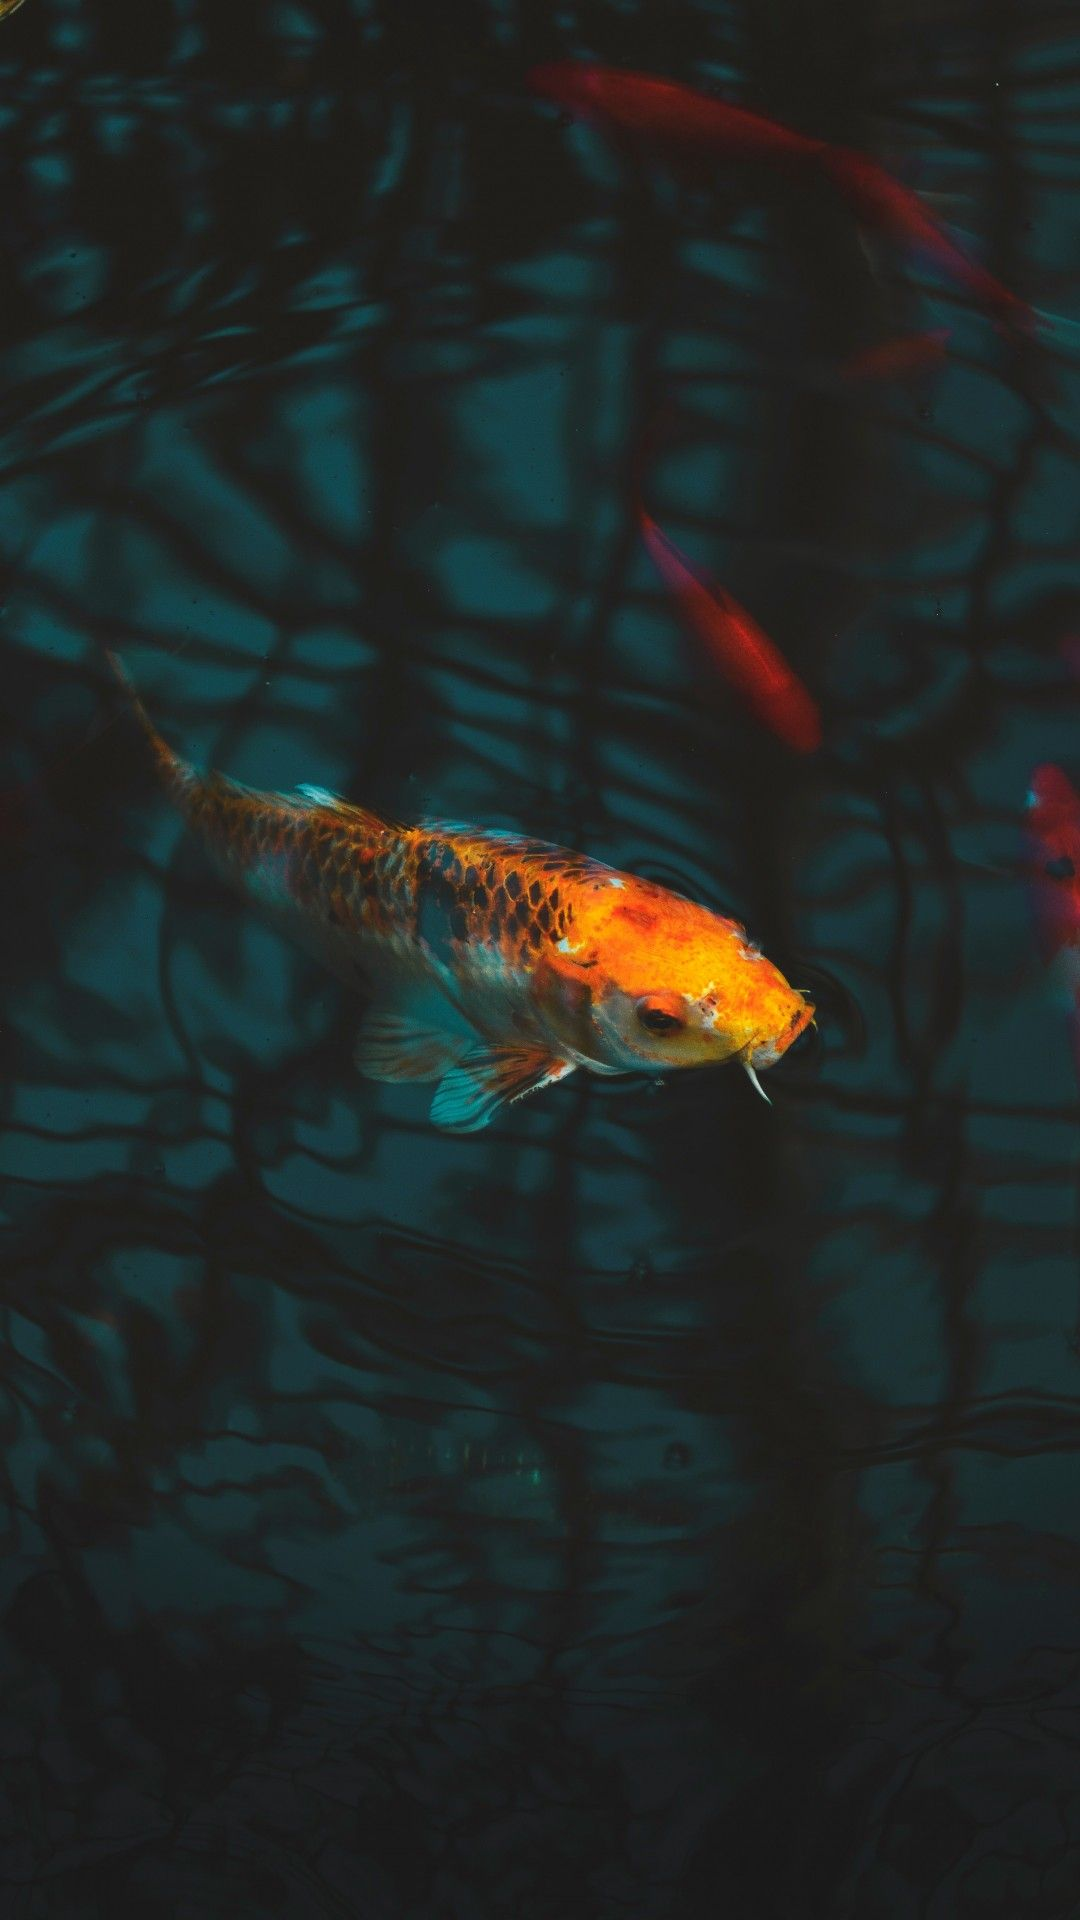 Aquarium Koi Carp Underwater Koi Fish Colors Fish Wallpaper Fish Wallpaper Iphone